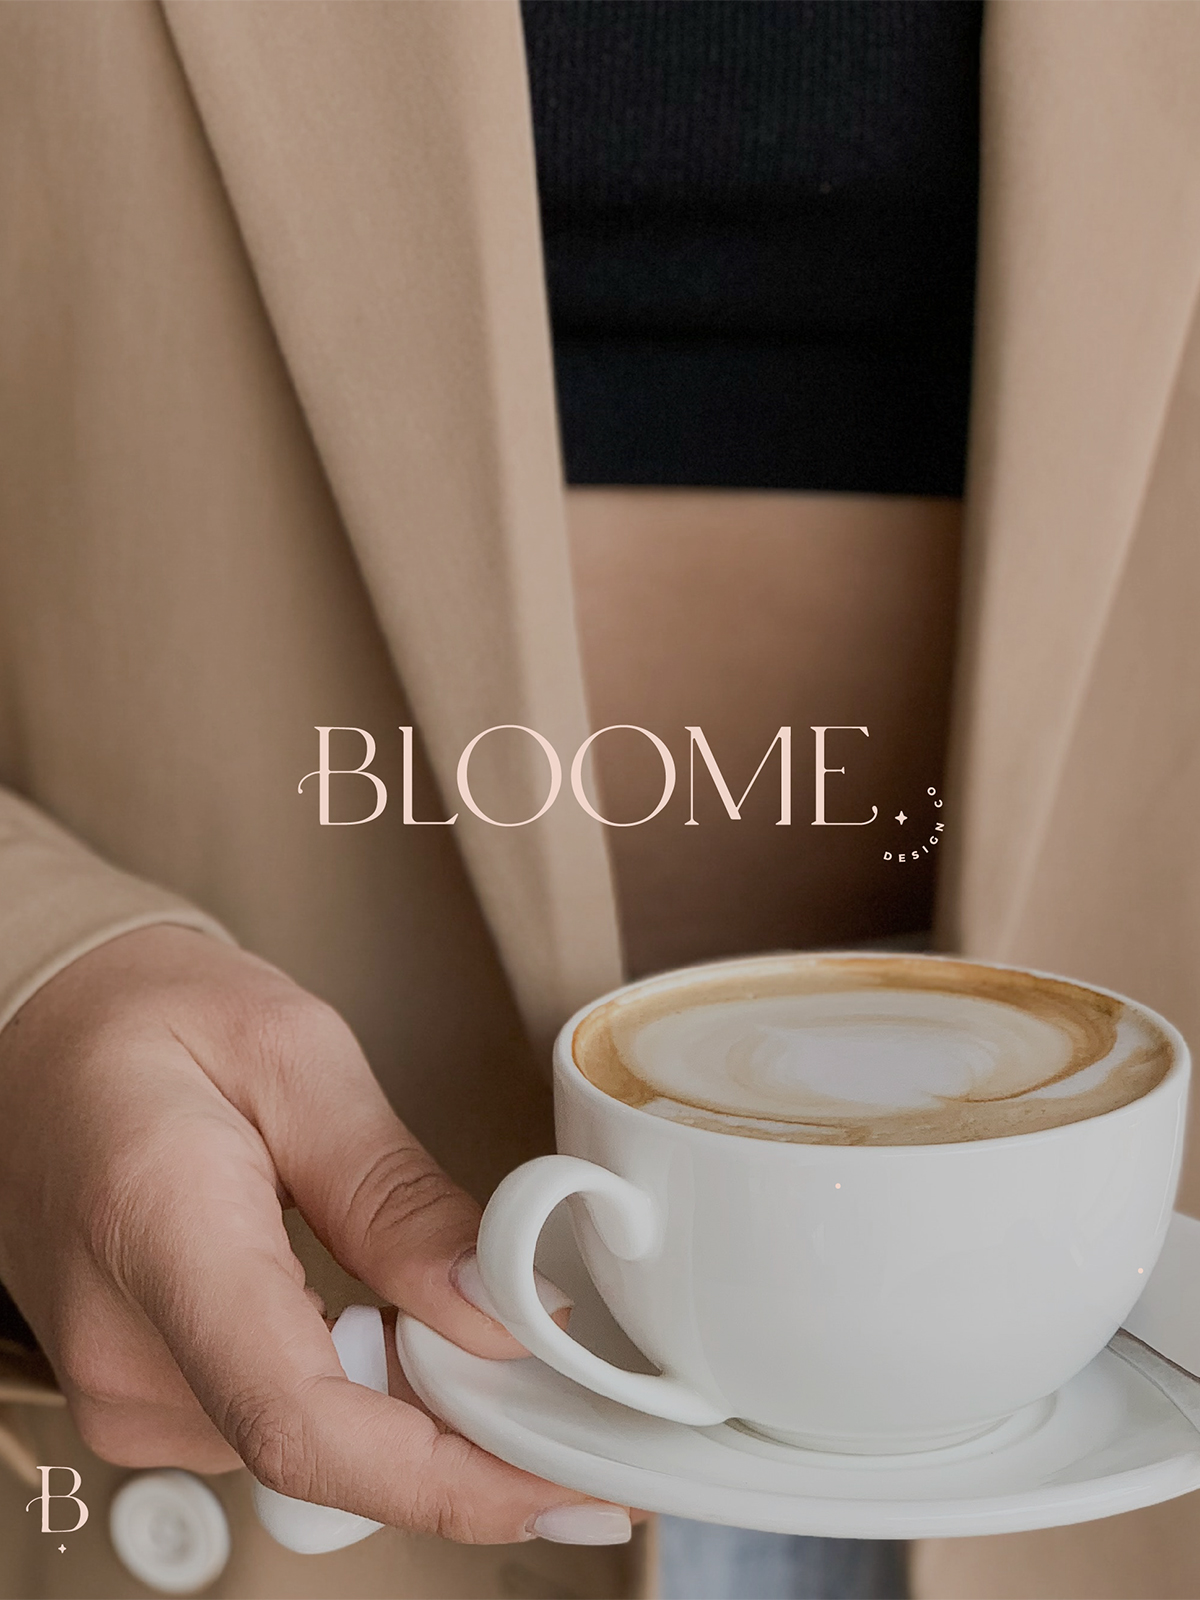 The Bloome Collective